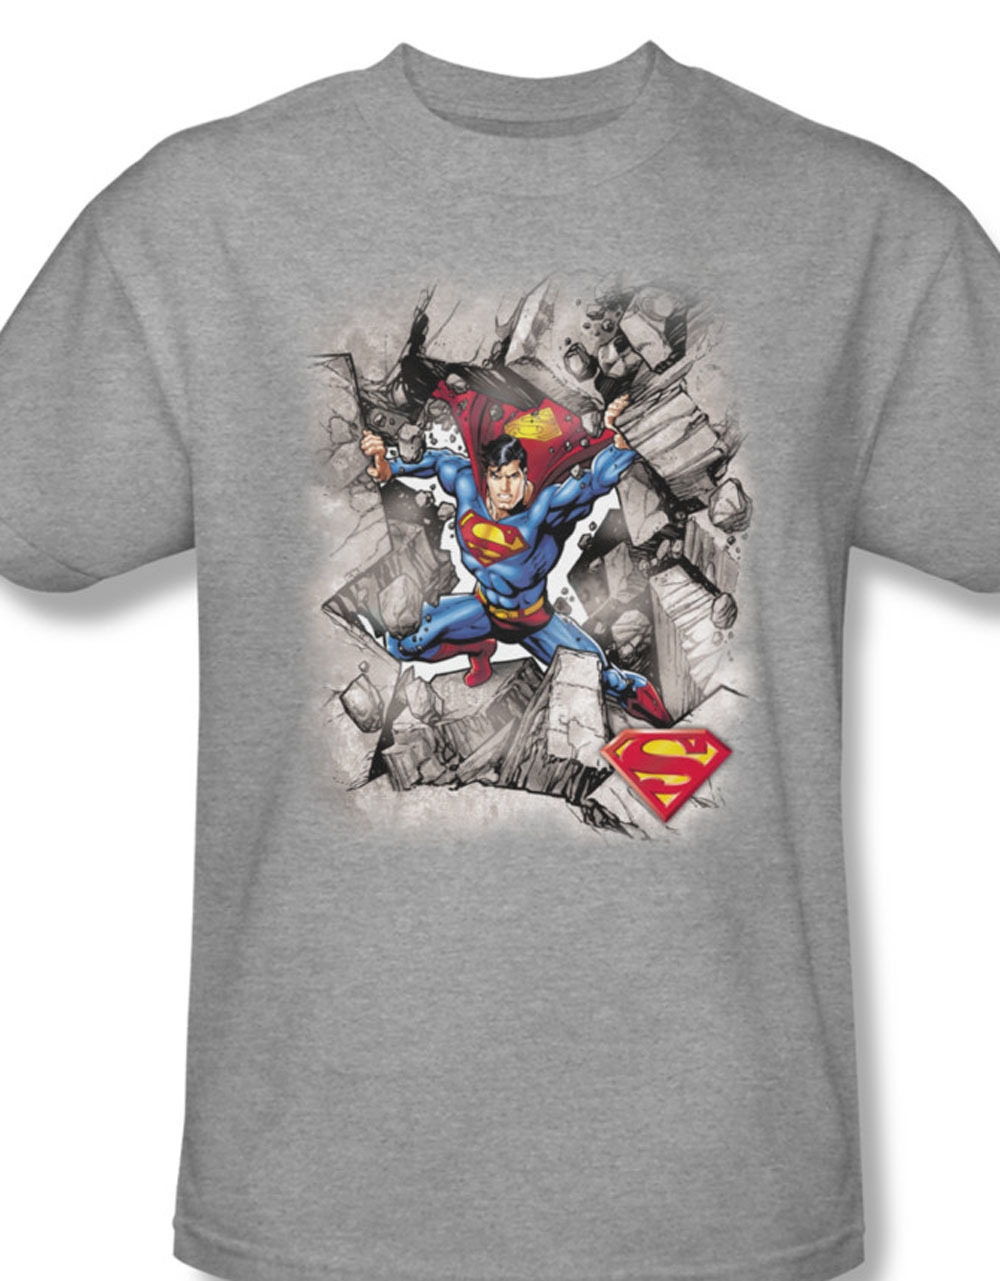 M1599 at superman dc comics tshirt clark kent lois lane for sale online heather gray graphic tee